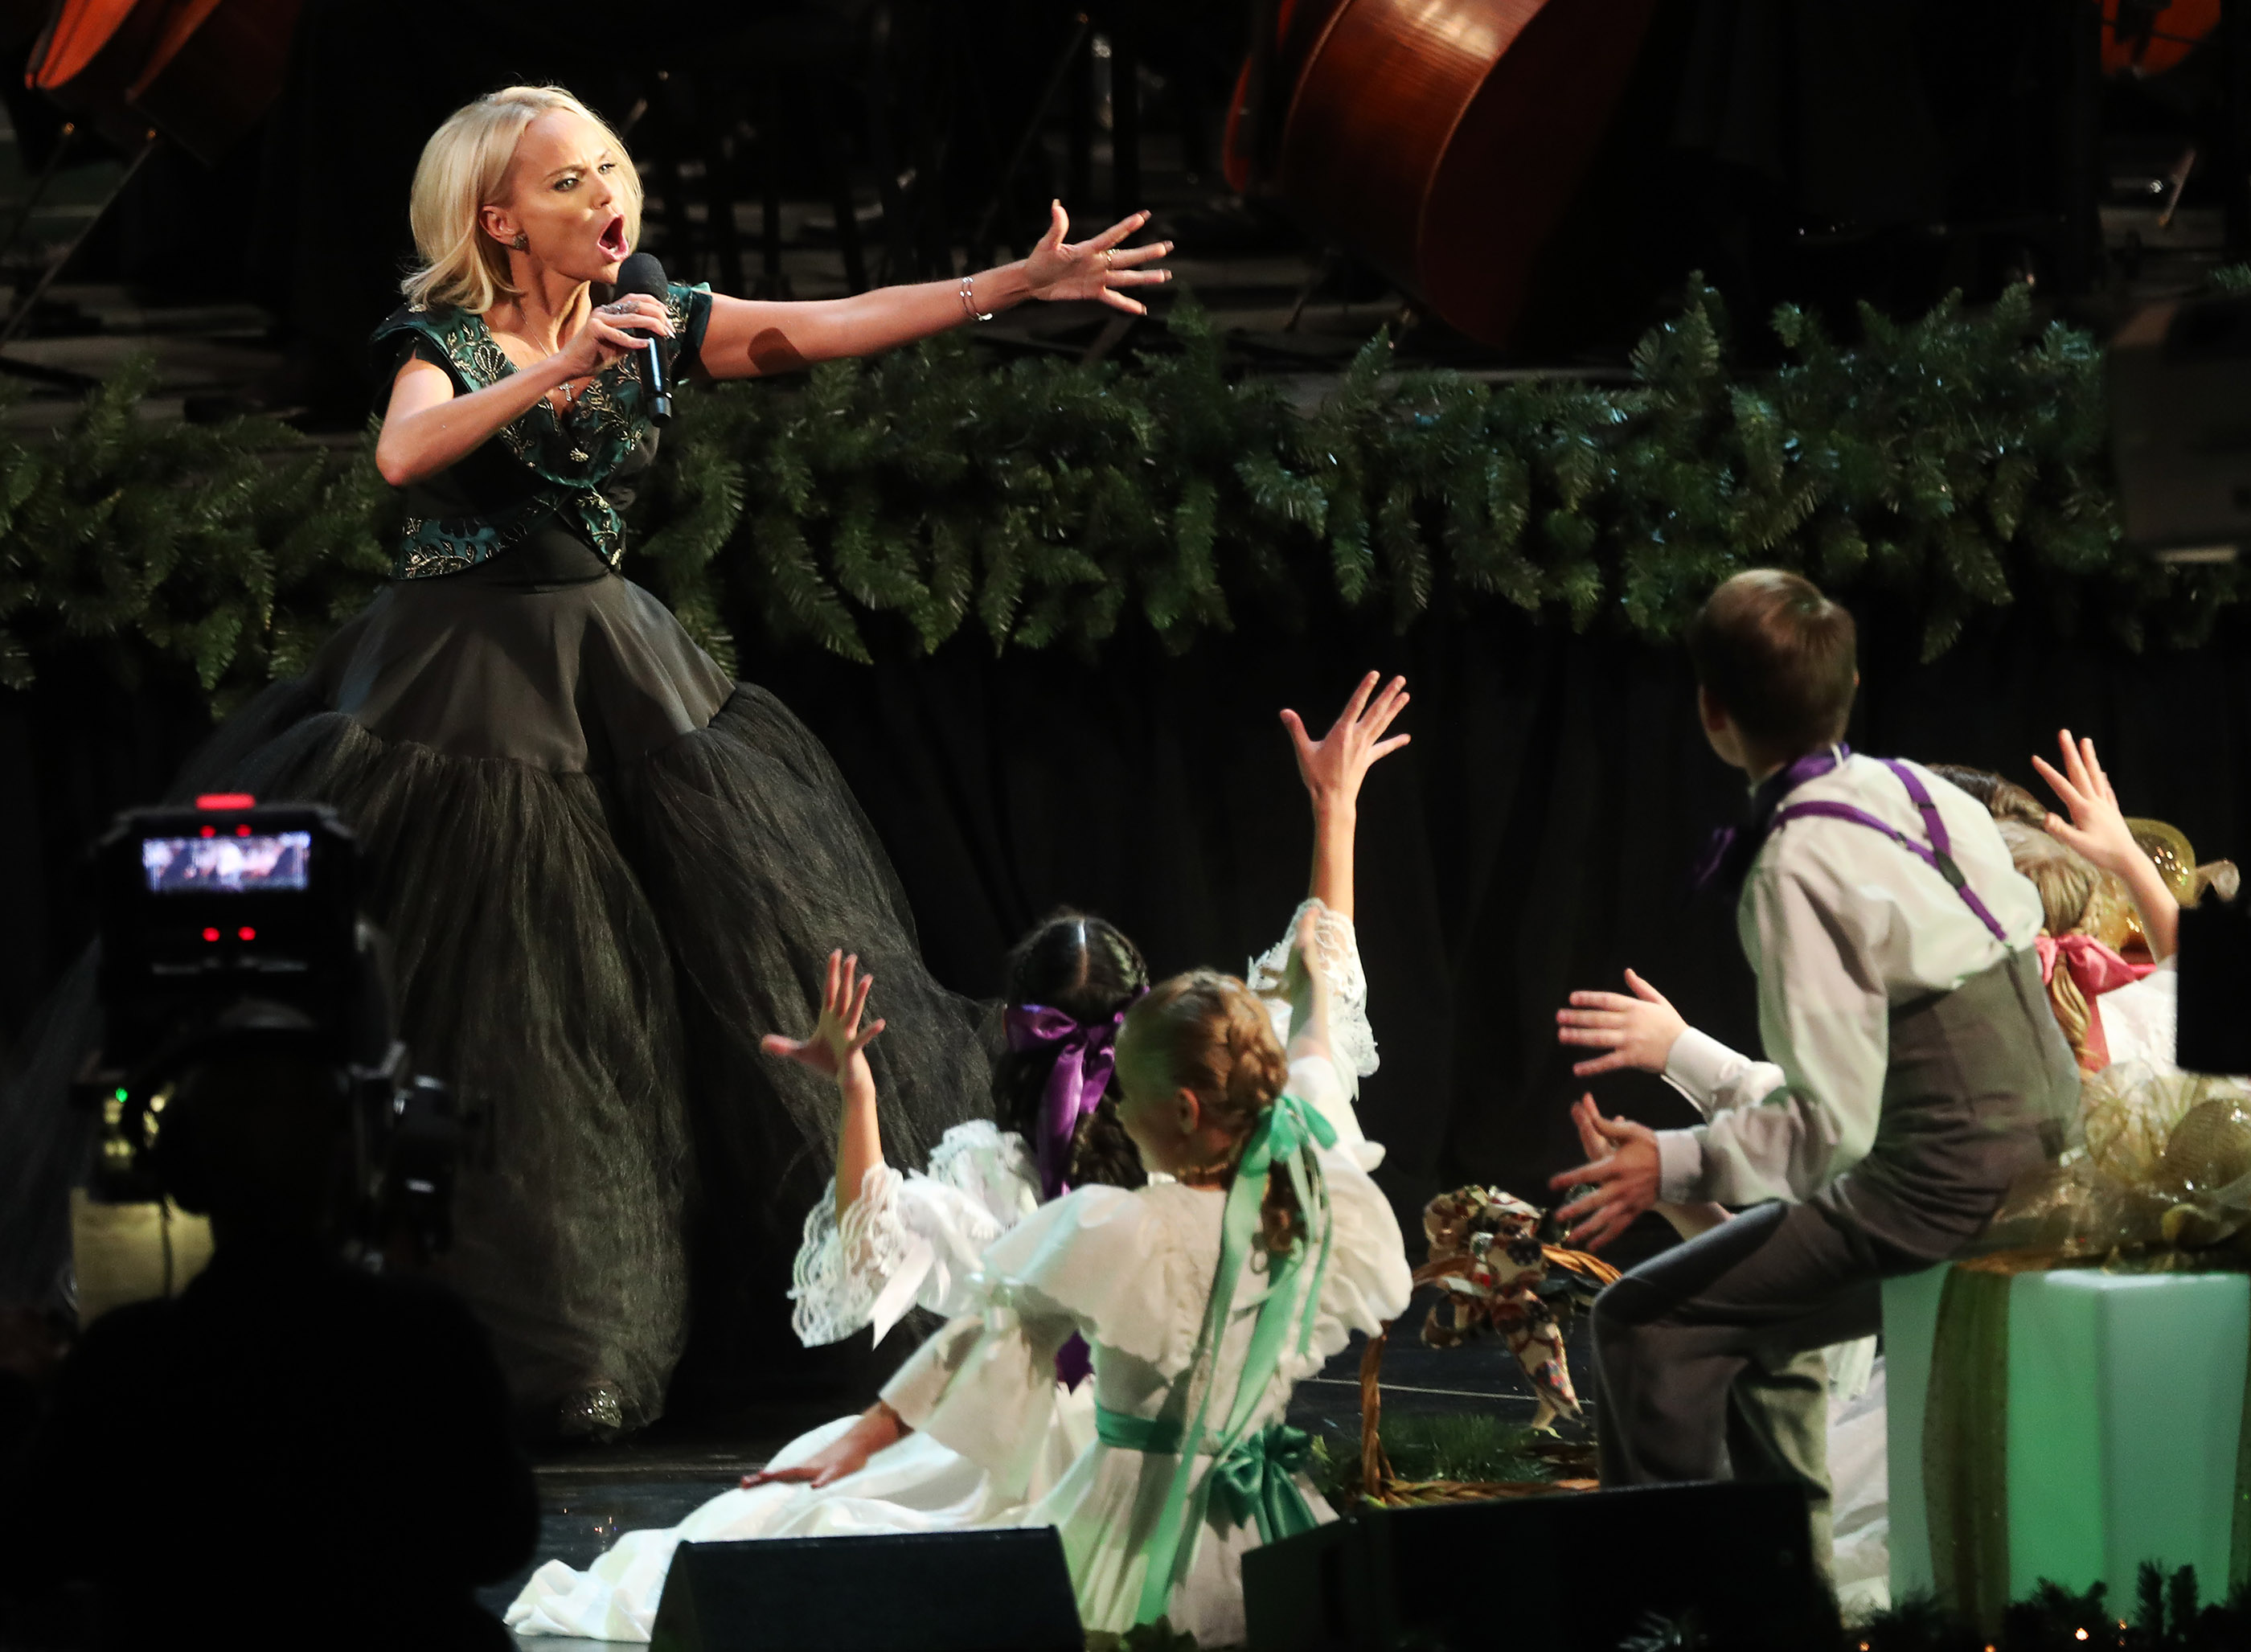 Kristin Chenoweth sings with the Tabernacle Choir at Temple Square during their opening Christmas concert at the Conference Center in Salt Lake City on Thursday, Dec. 13, 2018.